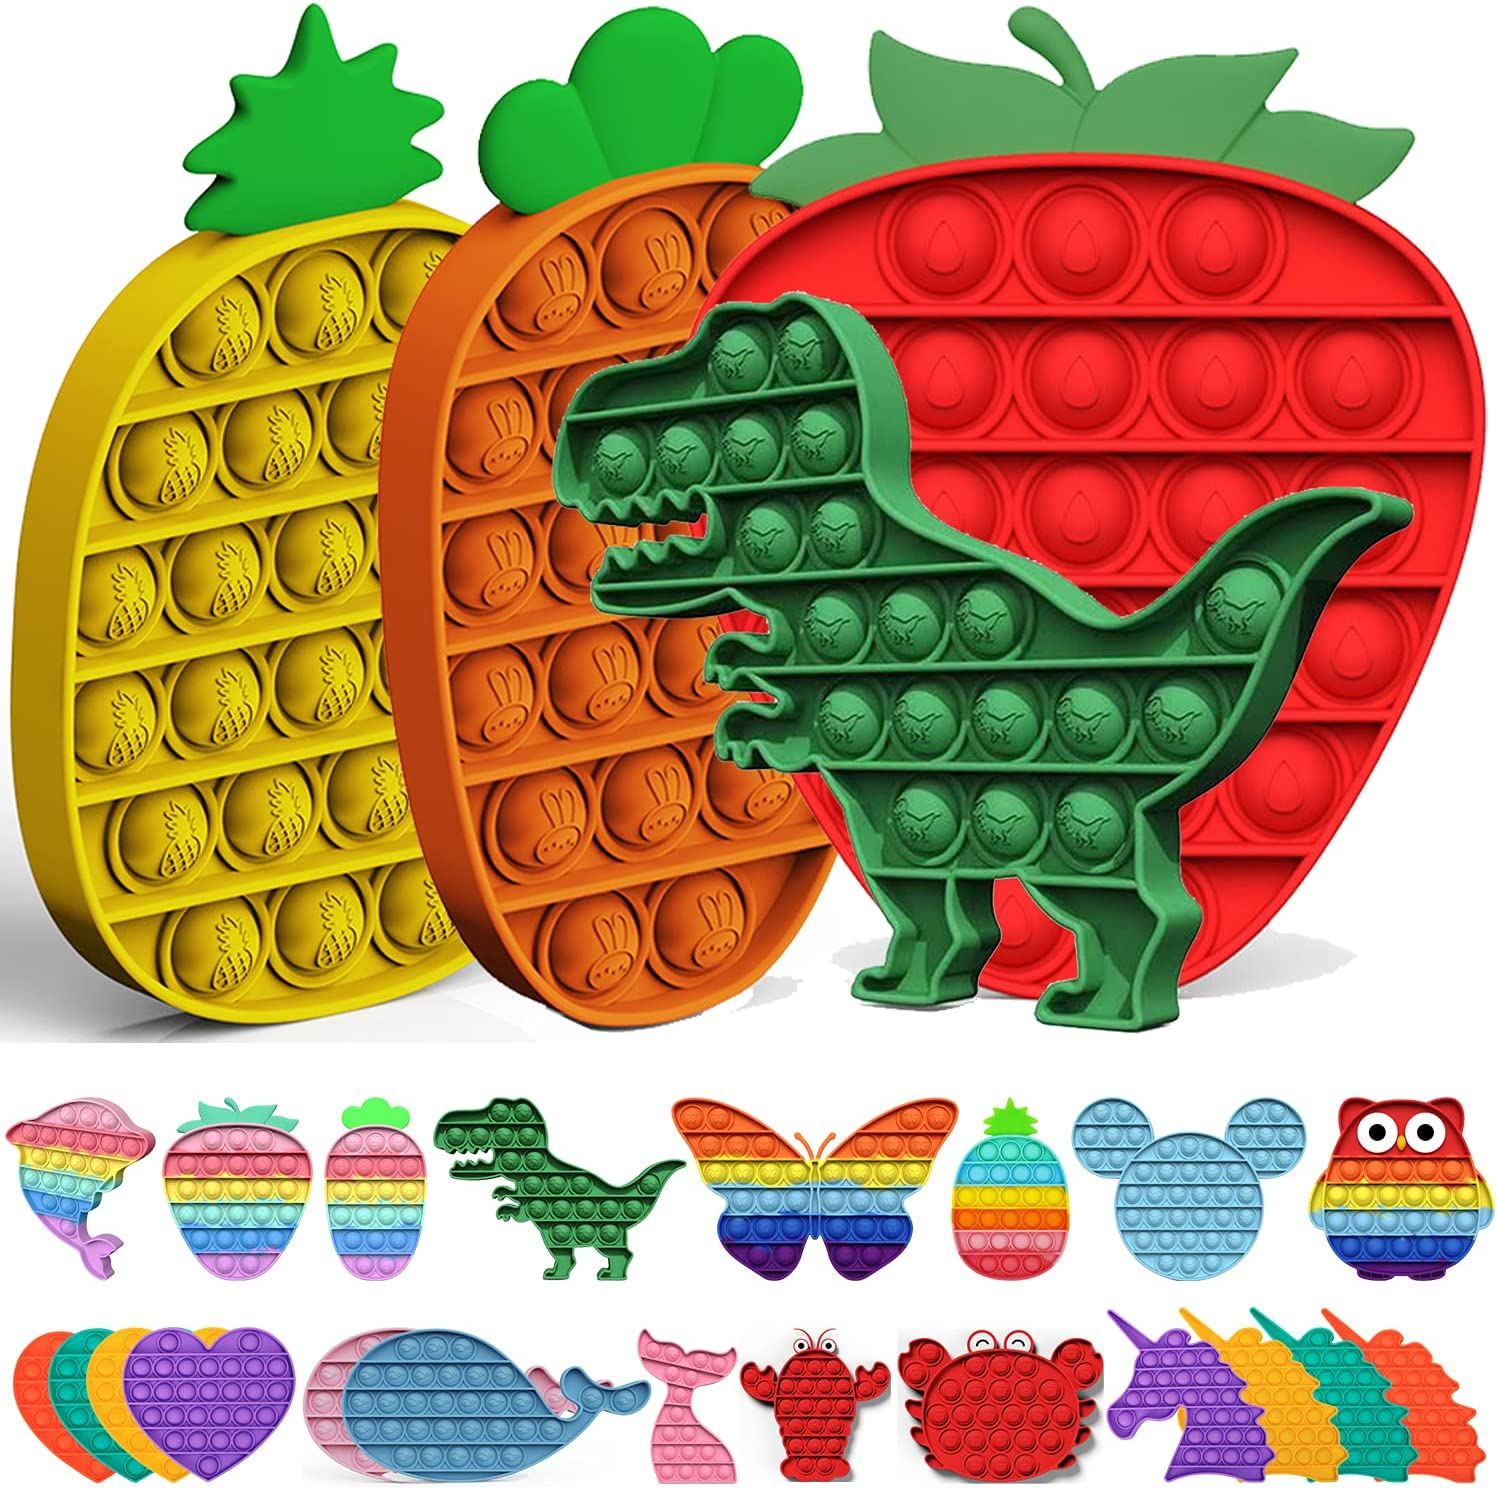 Strawberry Carrot pop Bubble-it Dinosaur Fidget Toy Pineapple 4 Pack Different Shapes Sensory Stress Reliever, Autism Special Needs Silicone Squeeze Fidget Toys for Anxiety ADHD Kids